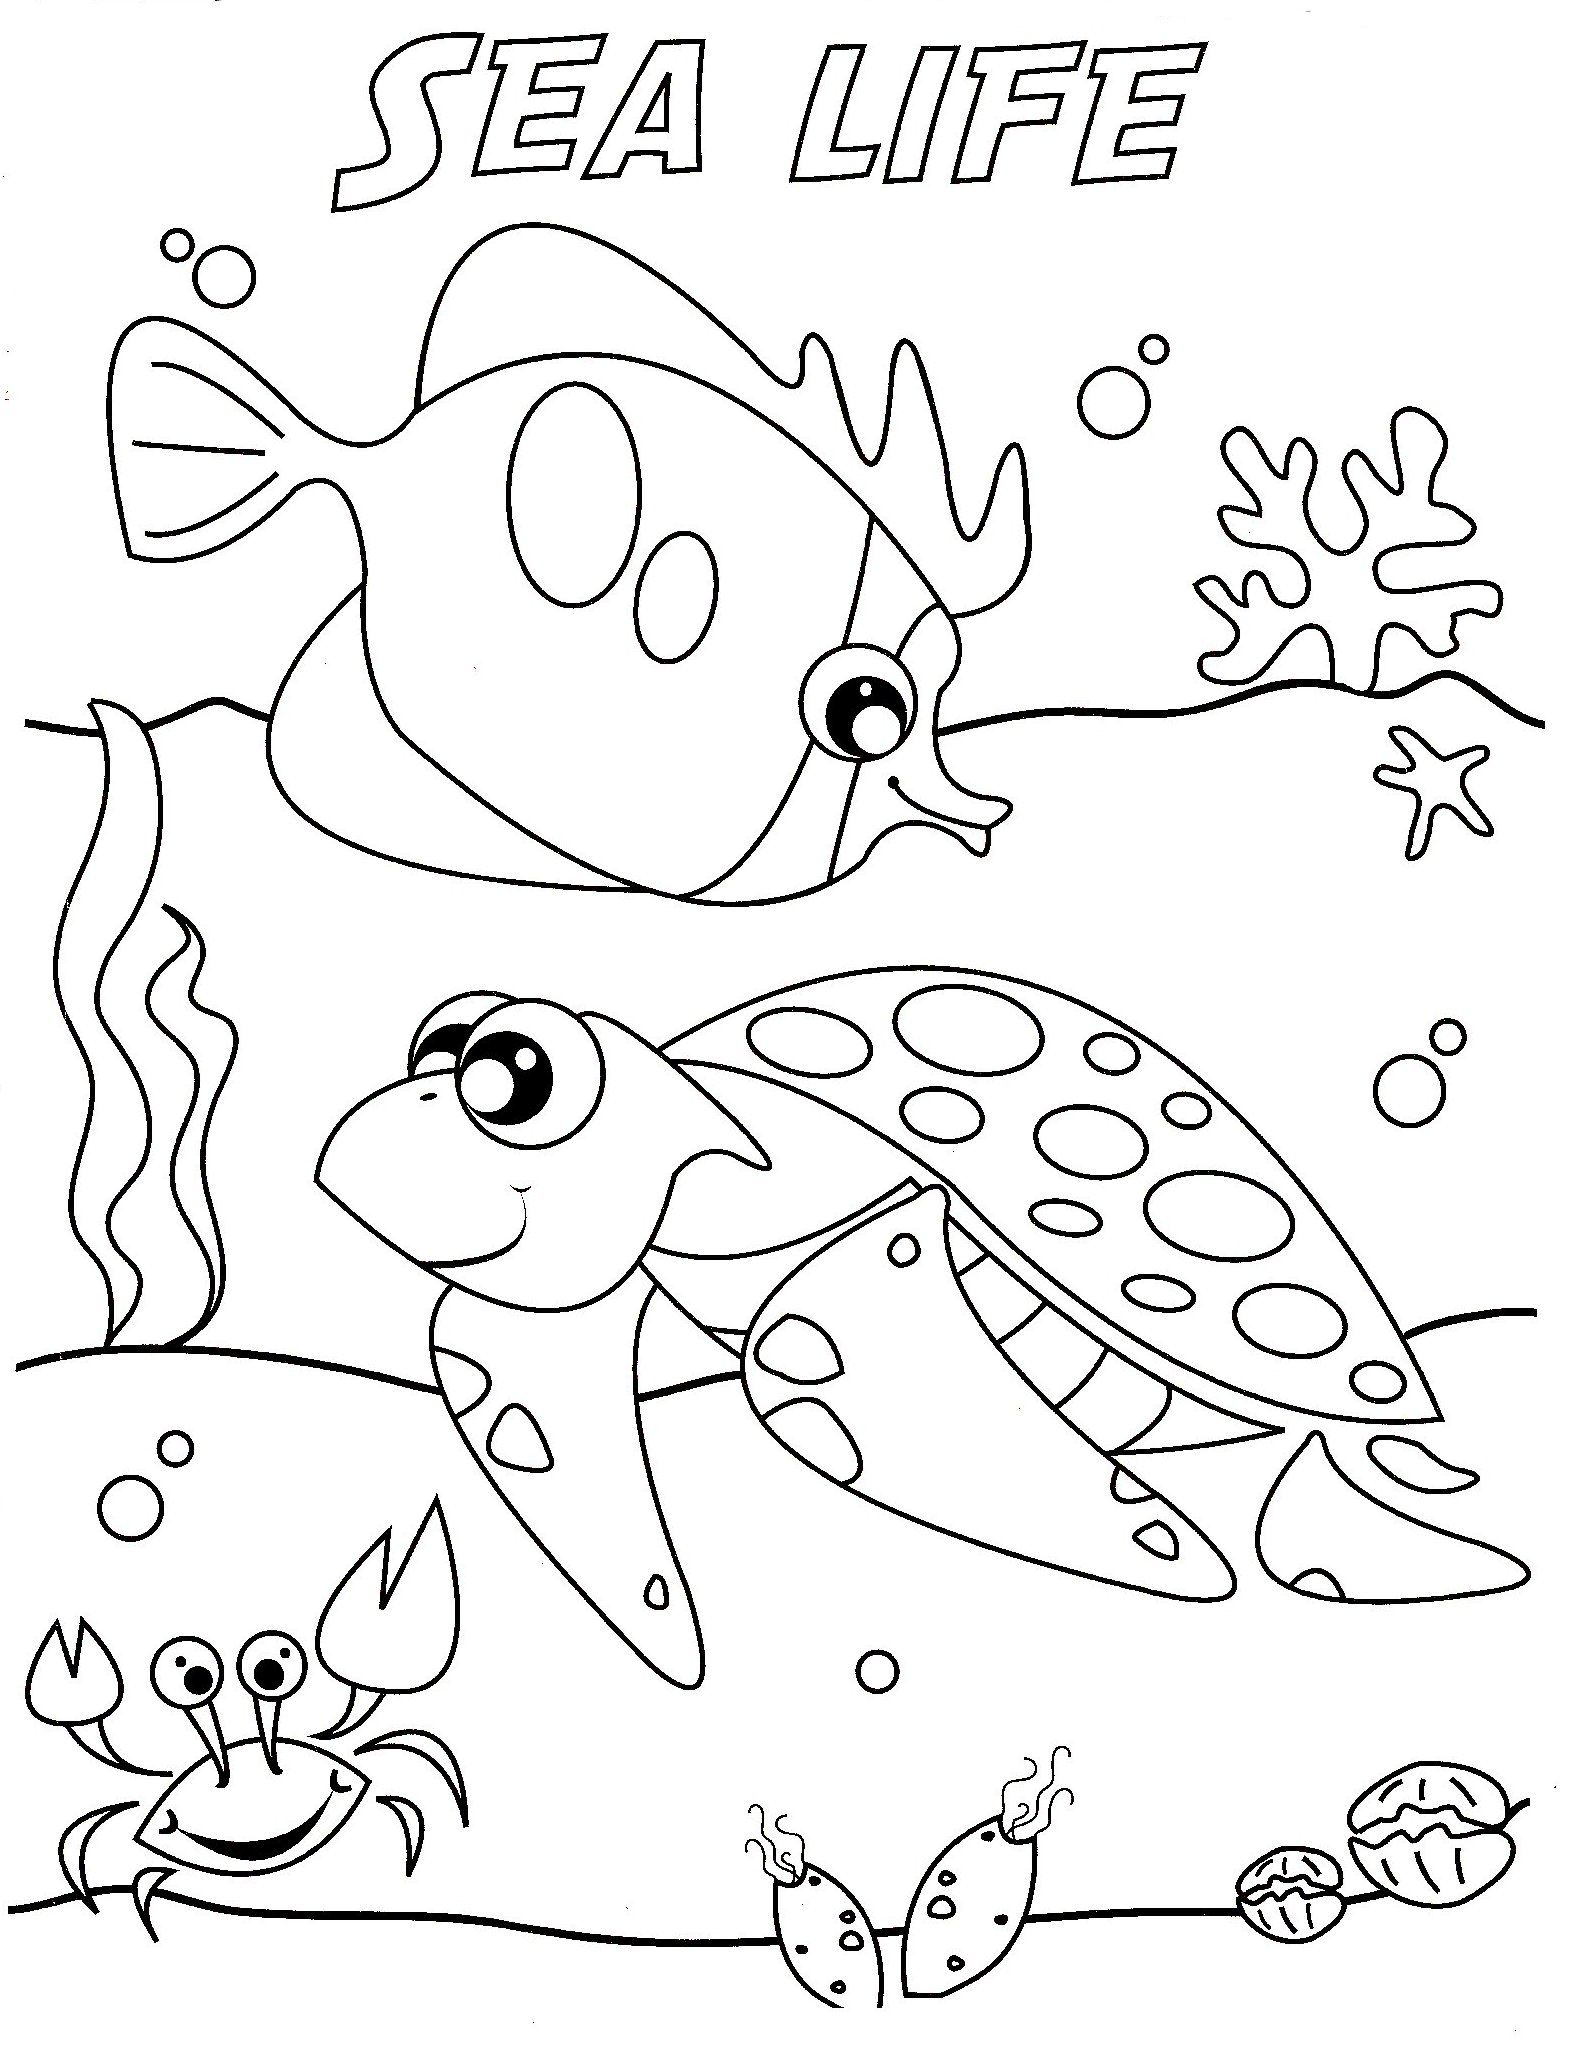 ocean wave coloring pages